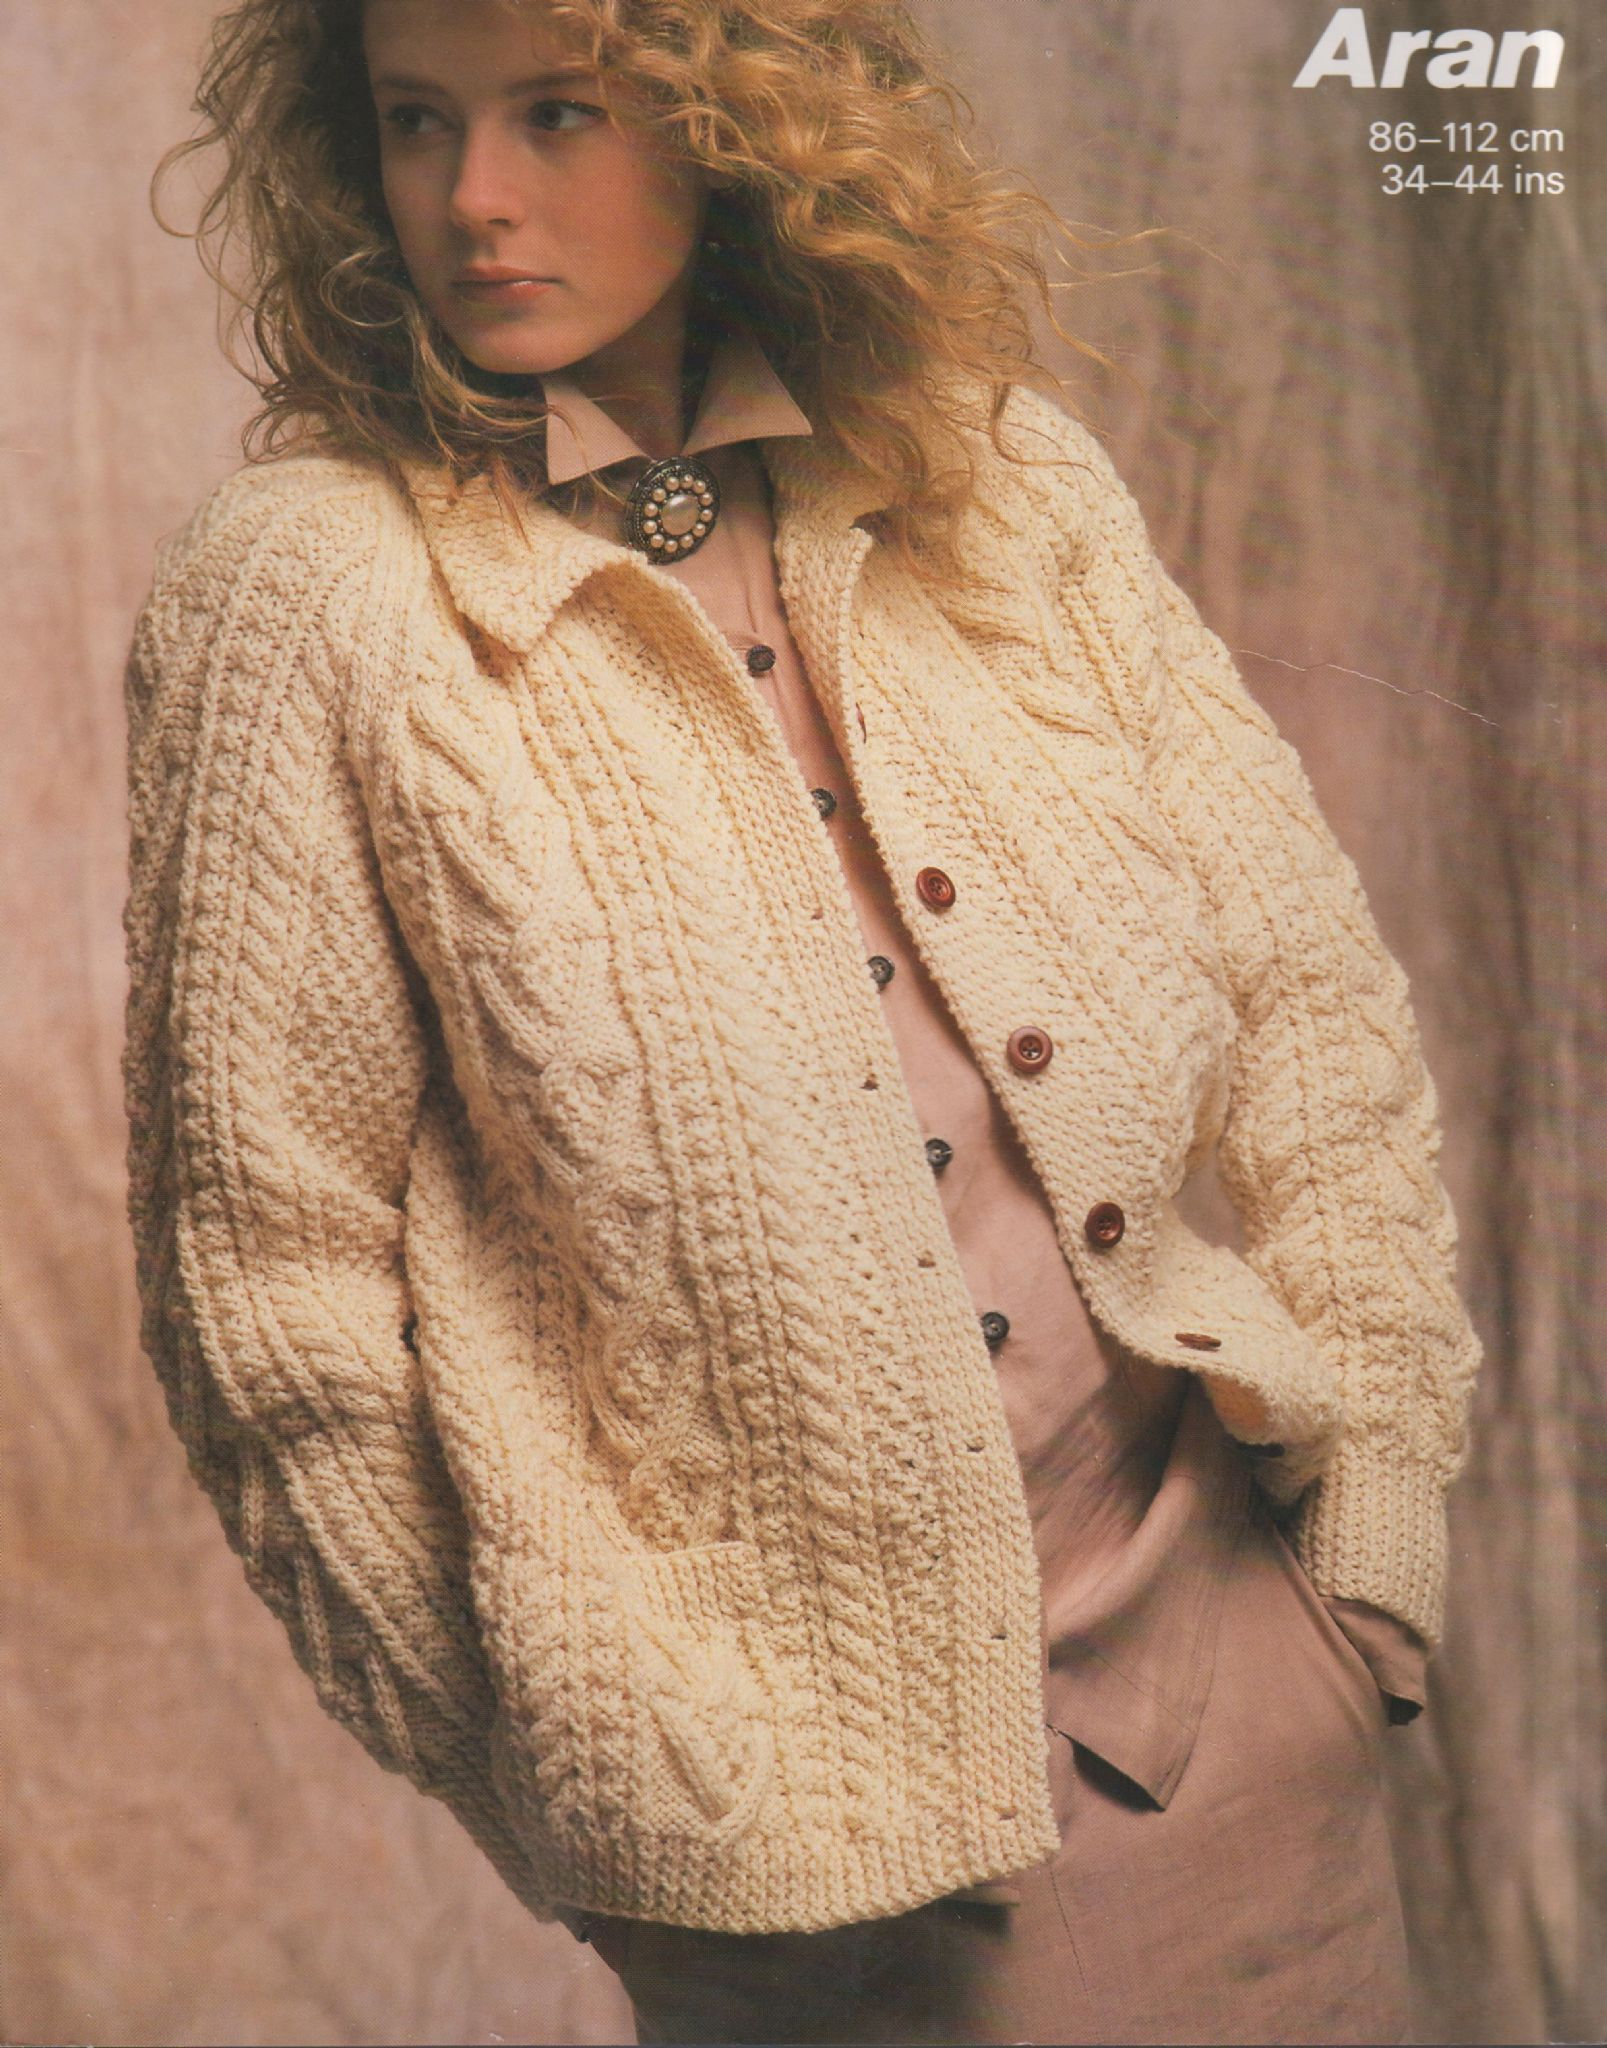 Ladies Aran Cardigan Knitting Patterns Pdf Vintage Knitting Pattern Ladies Aran Cable Cardigan Jacket Bust 34 44